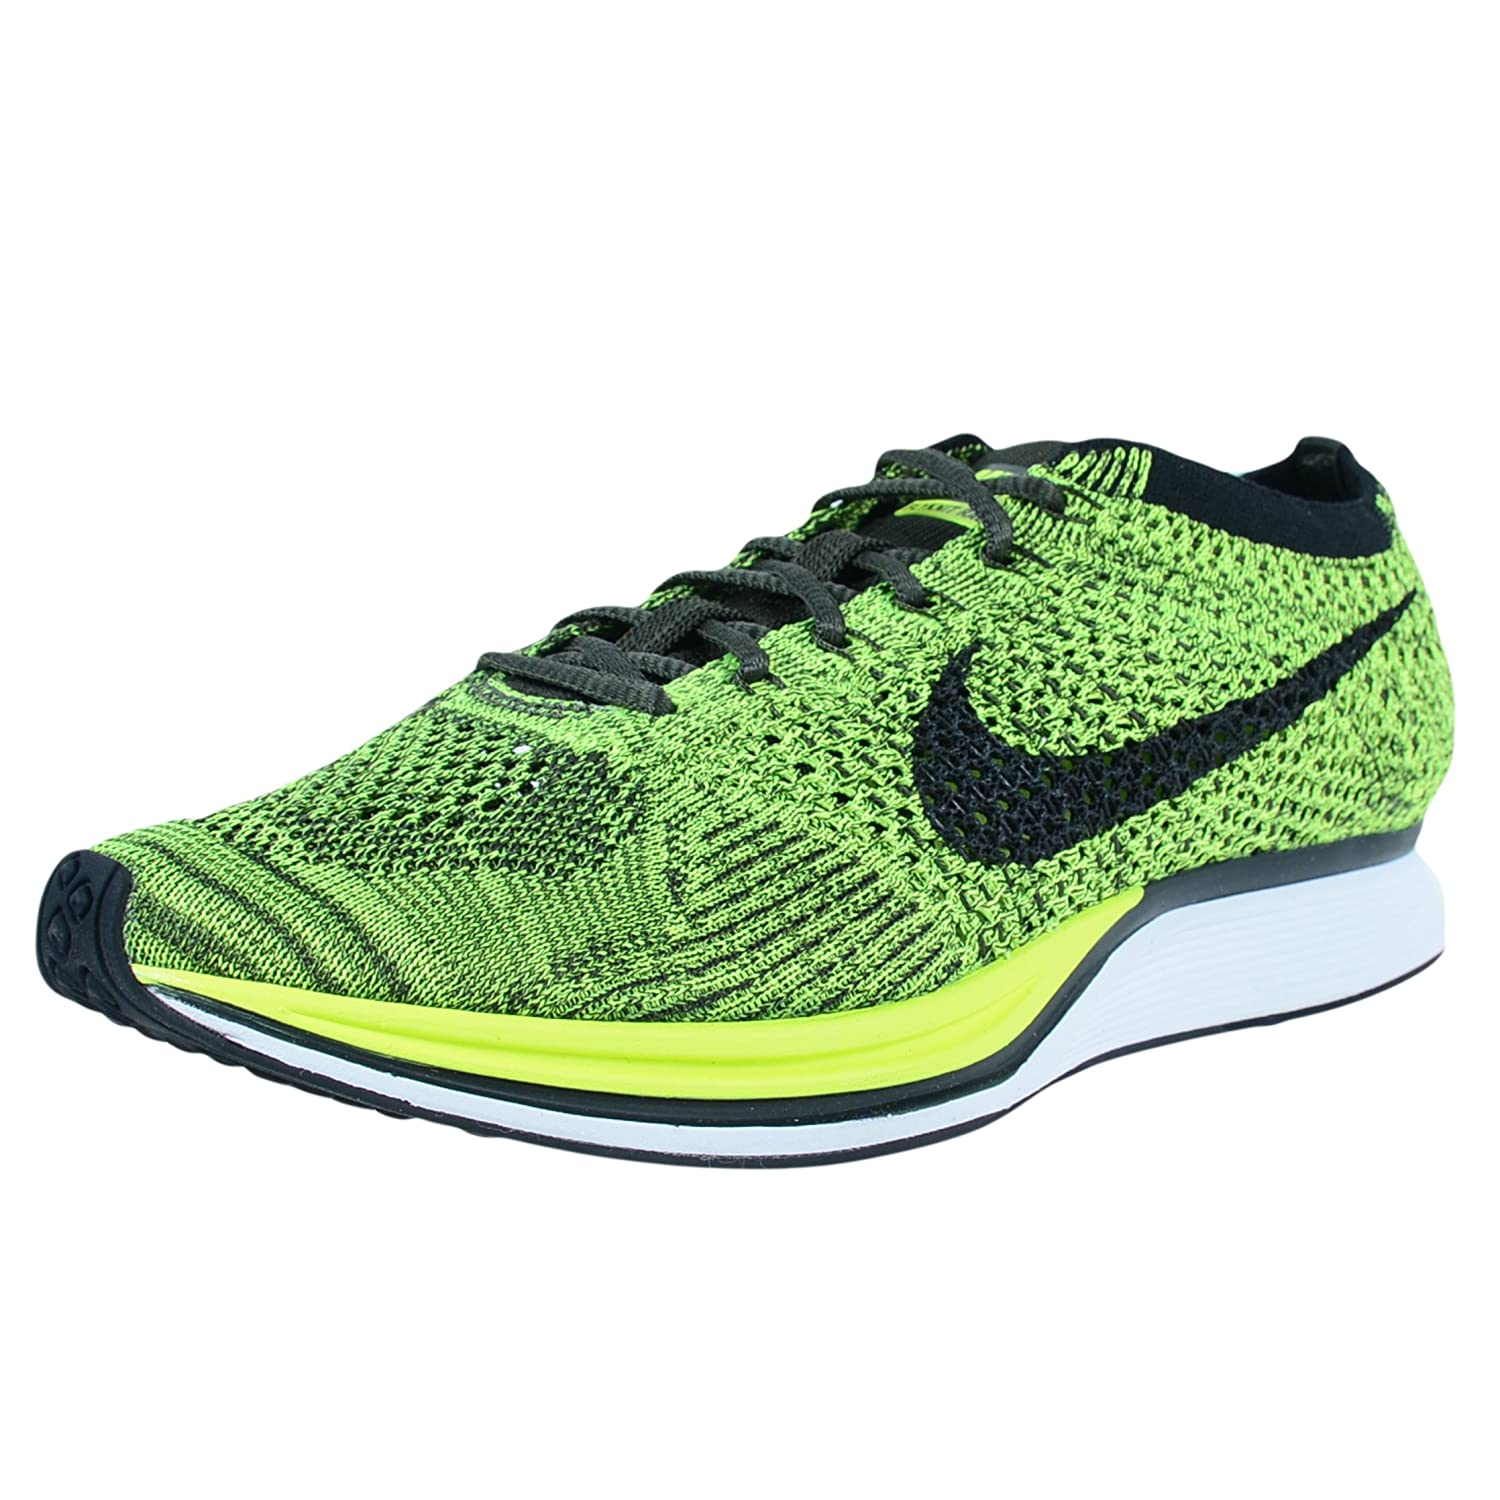 Nike Flyknit Racer Shoes Mens